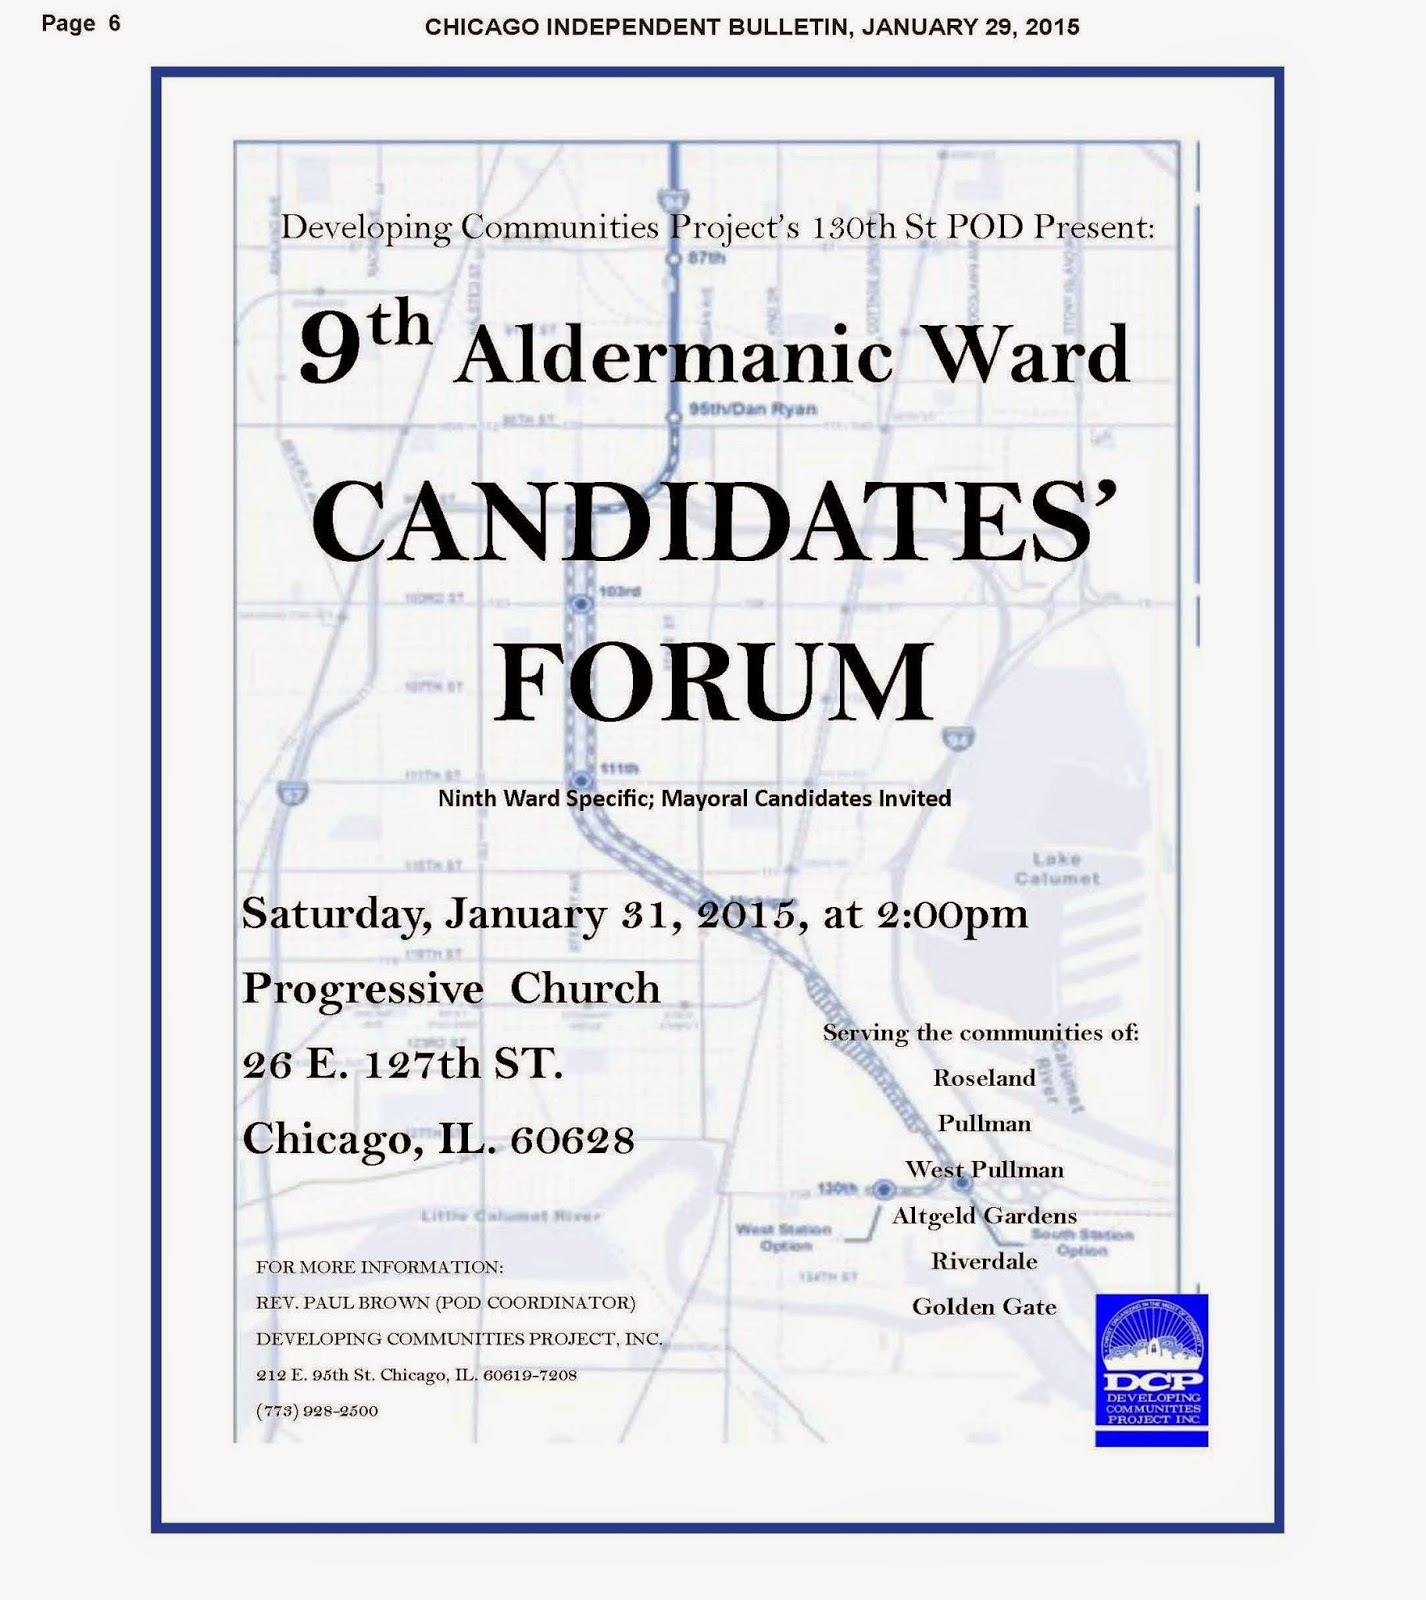 The Sixth Ward Dcp 9th Candidates Forum 27 Pm Projects Technical Discussions 2 Comments Developing Communities Project Is Hosting A On January 31st 2015 At It Will Be Held Progressive Church Located 26 E 127th